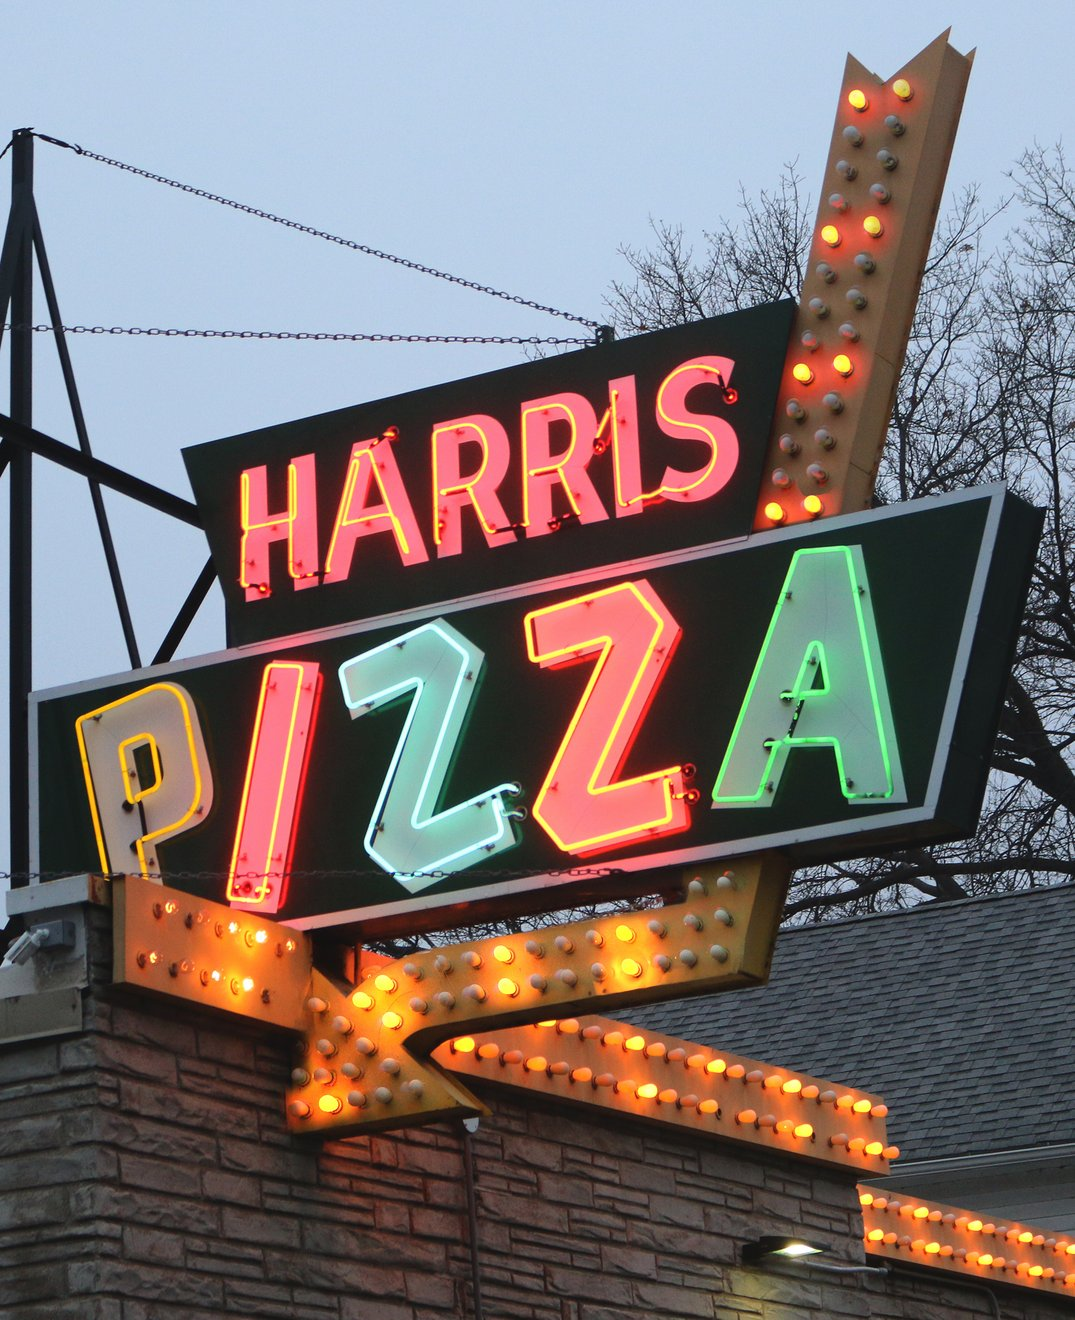 The Harris Pizza sign in west Davenport. Photo by Bruce Walters.